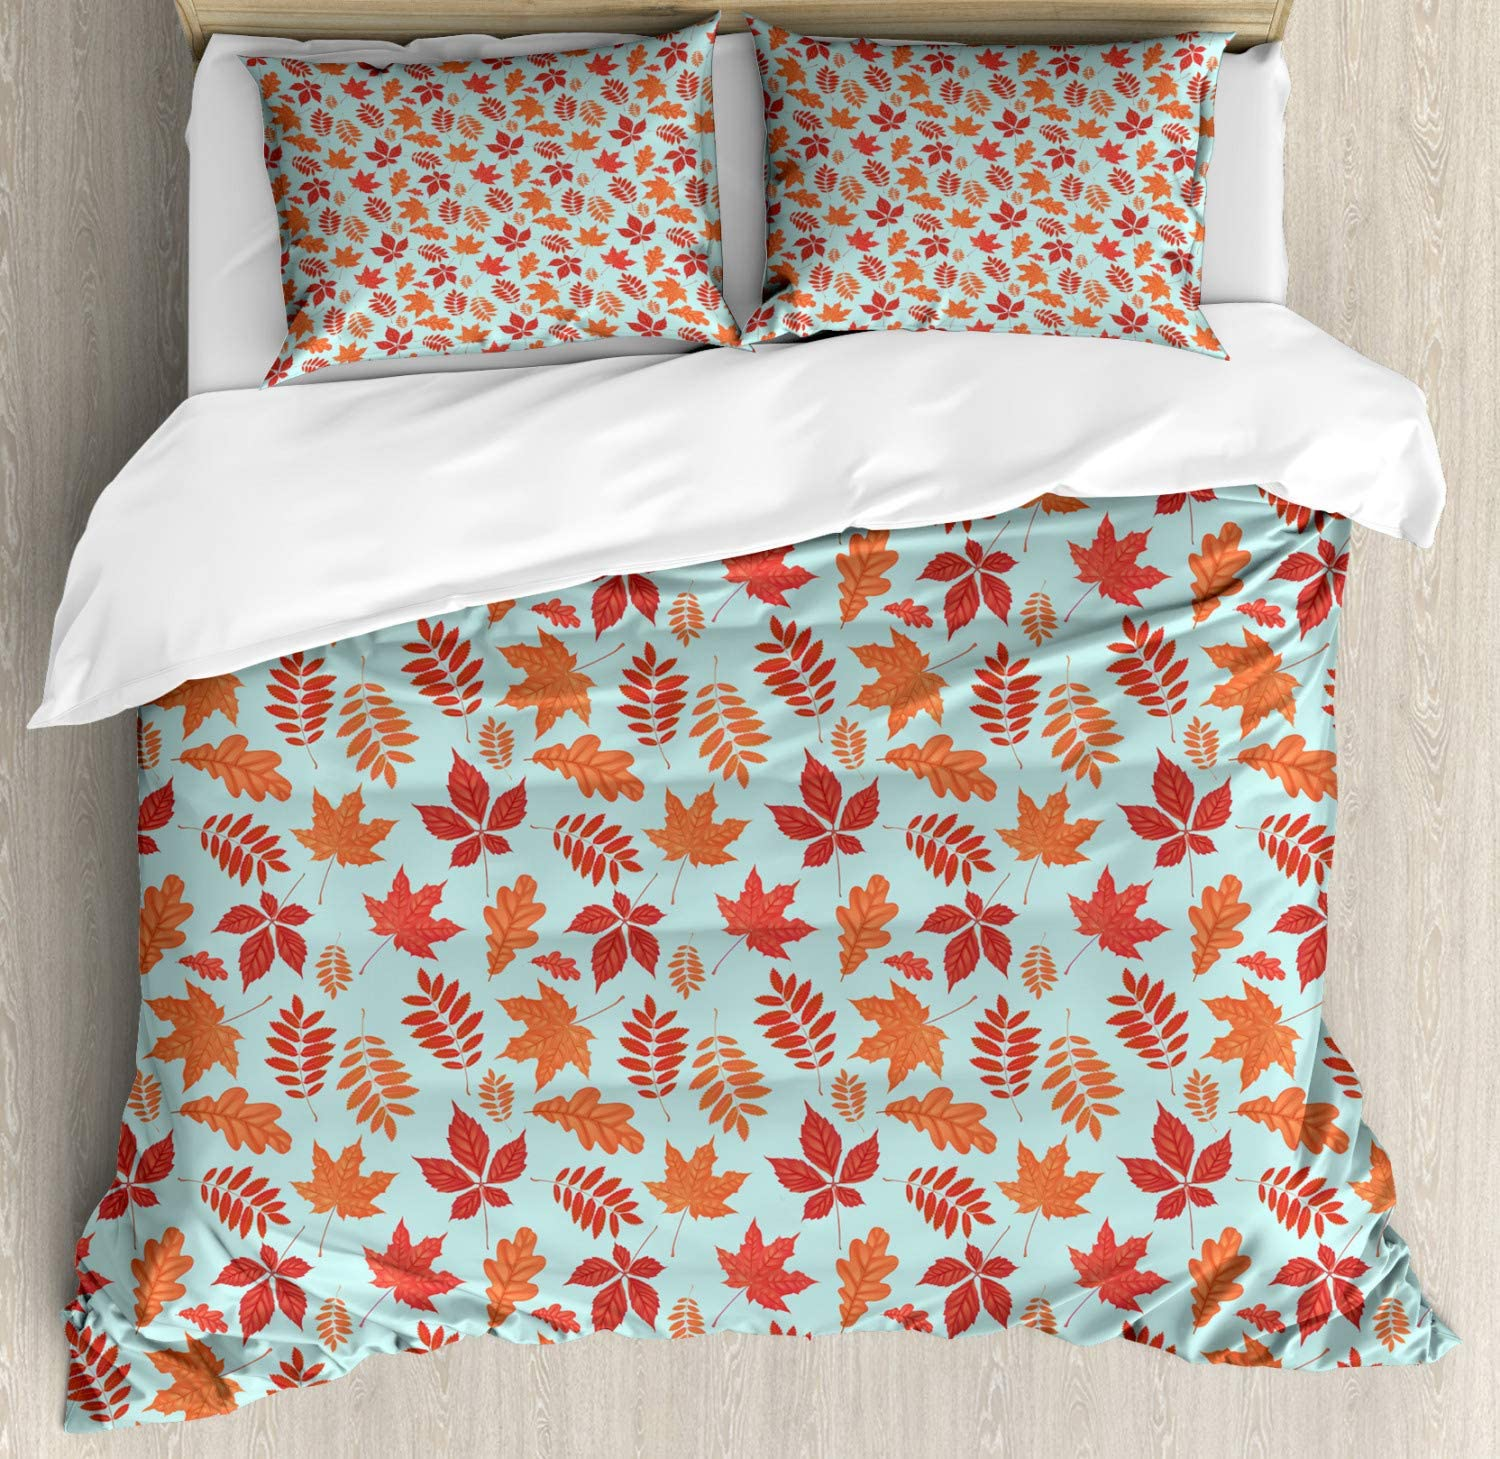 Lunarable Leaves Duvet Cover Set, Fall Season Themed Composition of Foliage Maple and Oak Leaf Pattern on Aqua, Decorative 3 Piece Bedding Set with 2 Pillow Shams, Queen Size, Aqua Orange Rust